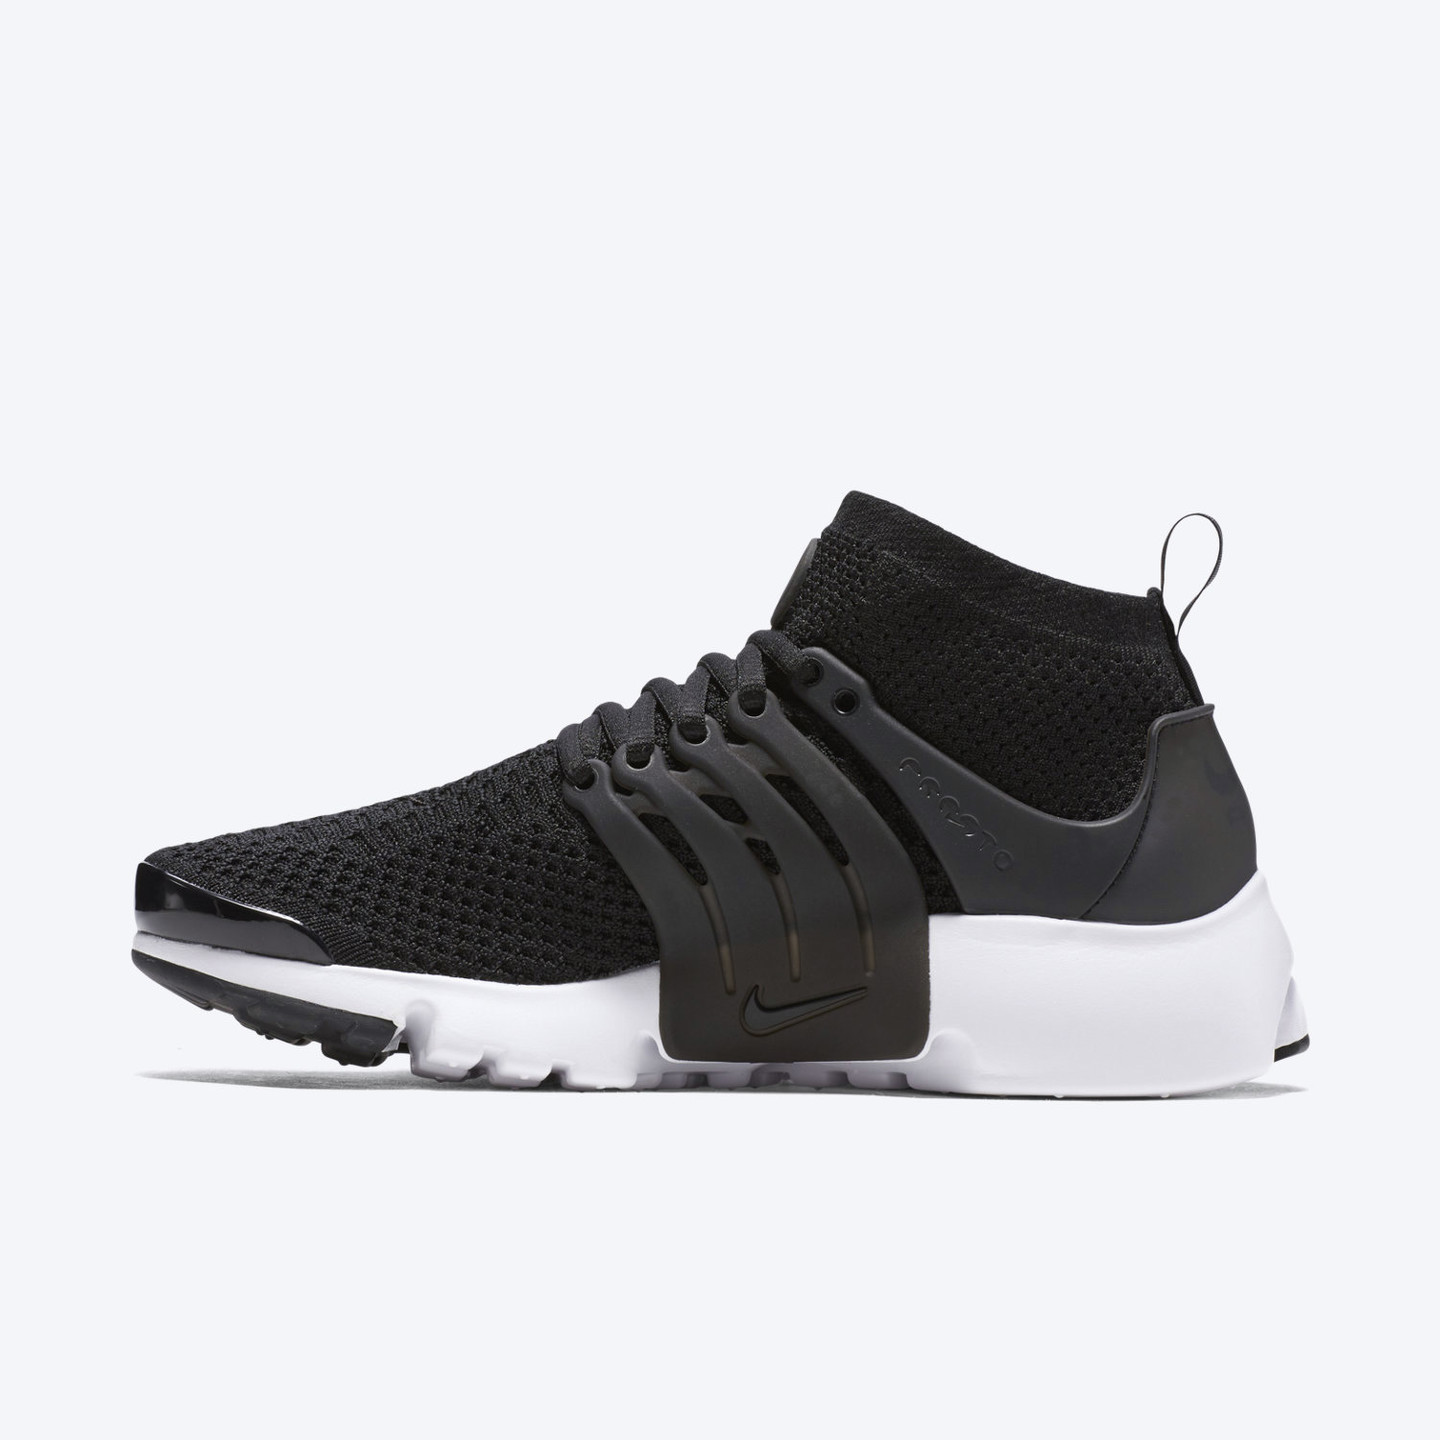 Nike Air Presto Ultra Flyknit Black / White 835570-001-42